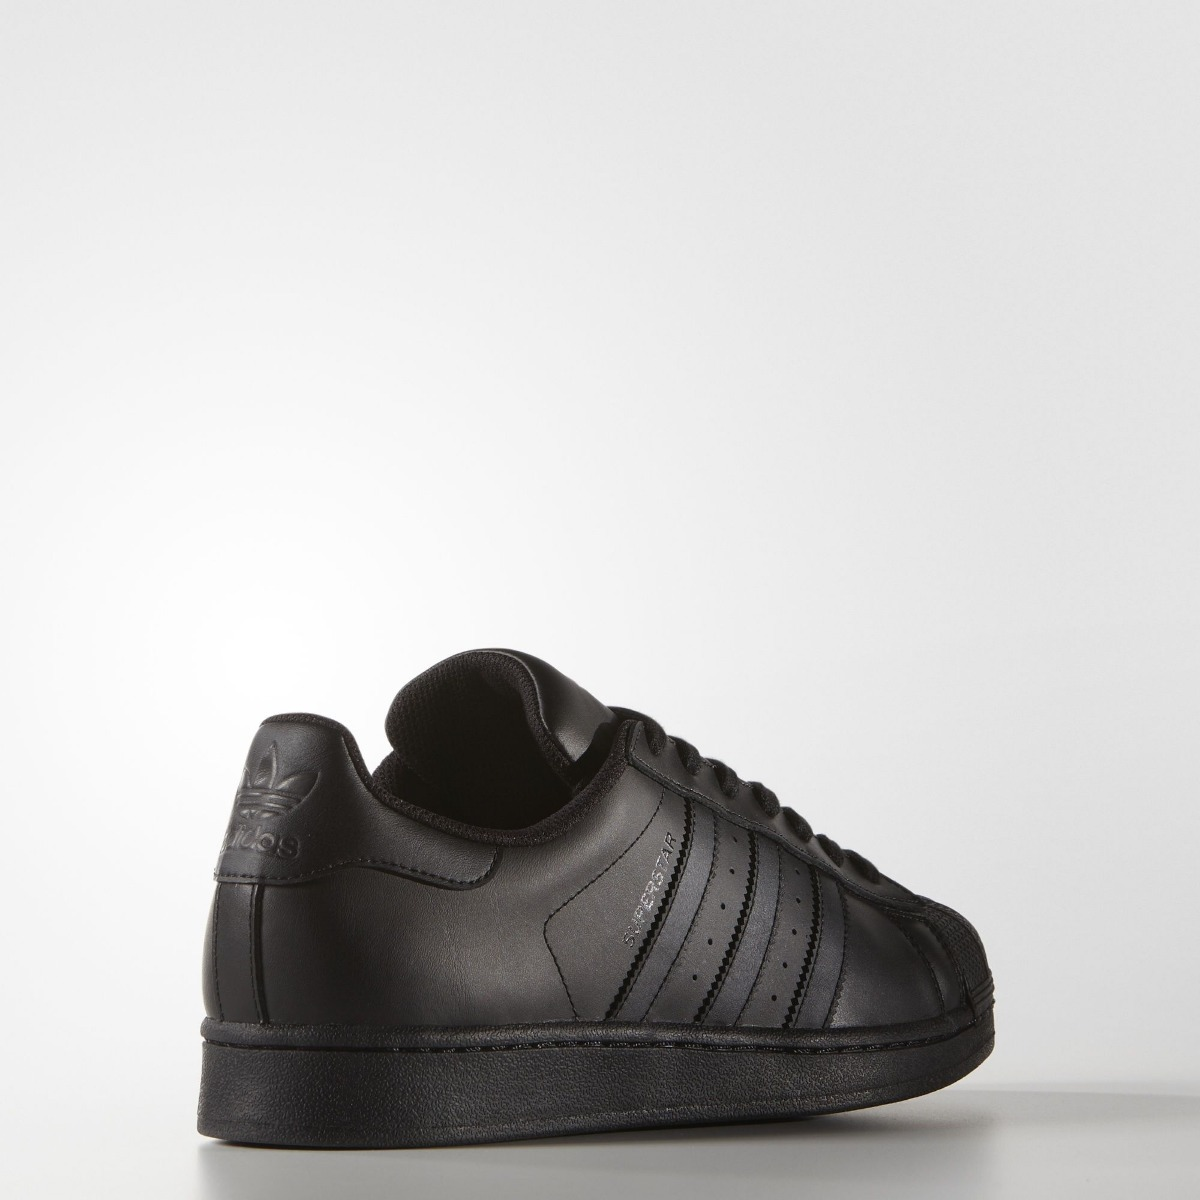 0b0abc44b tenis adidas h68394 superstar foundation preto original nf. Carregando zoom.